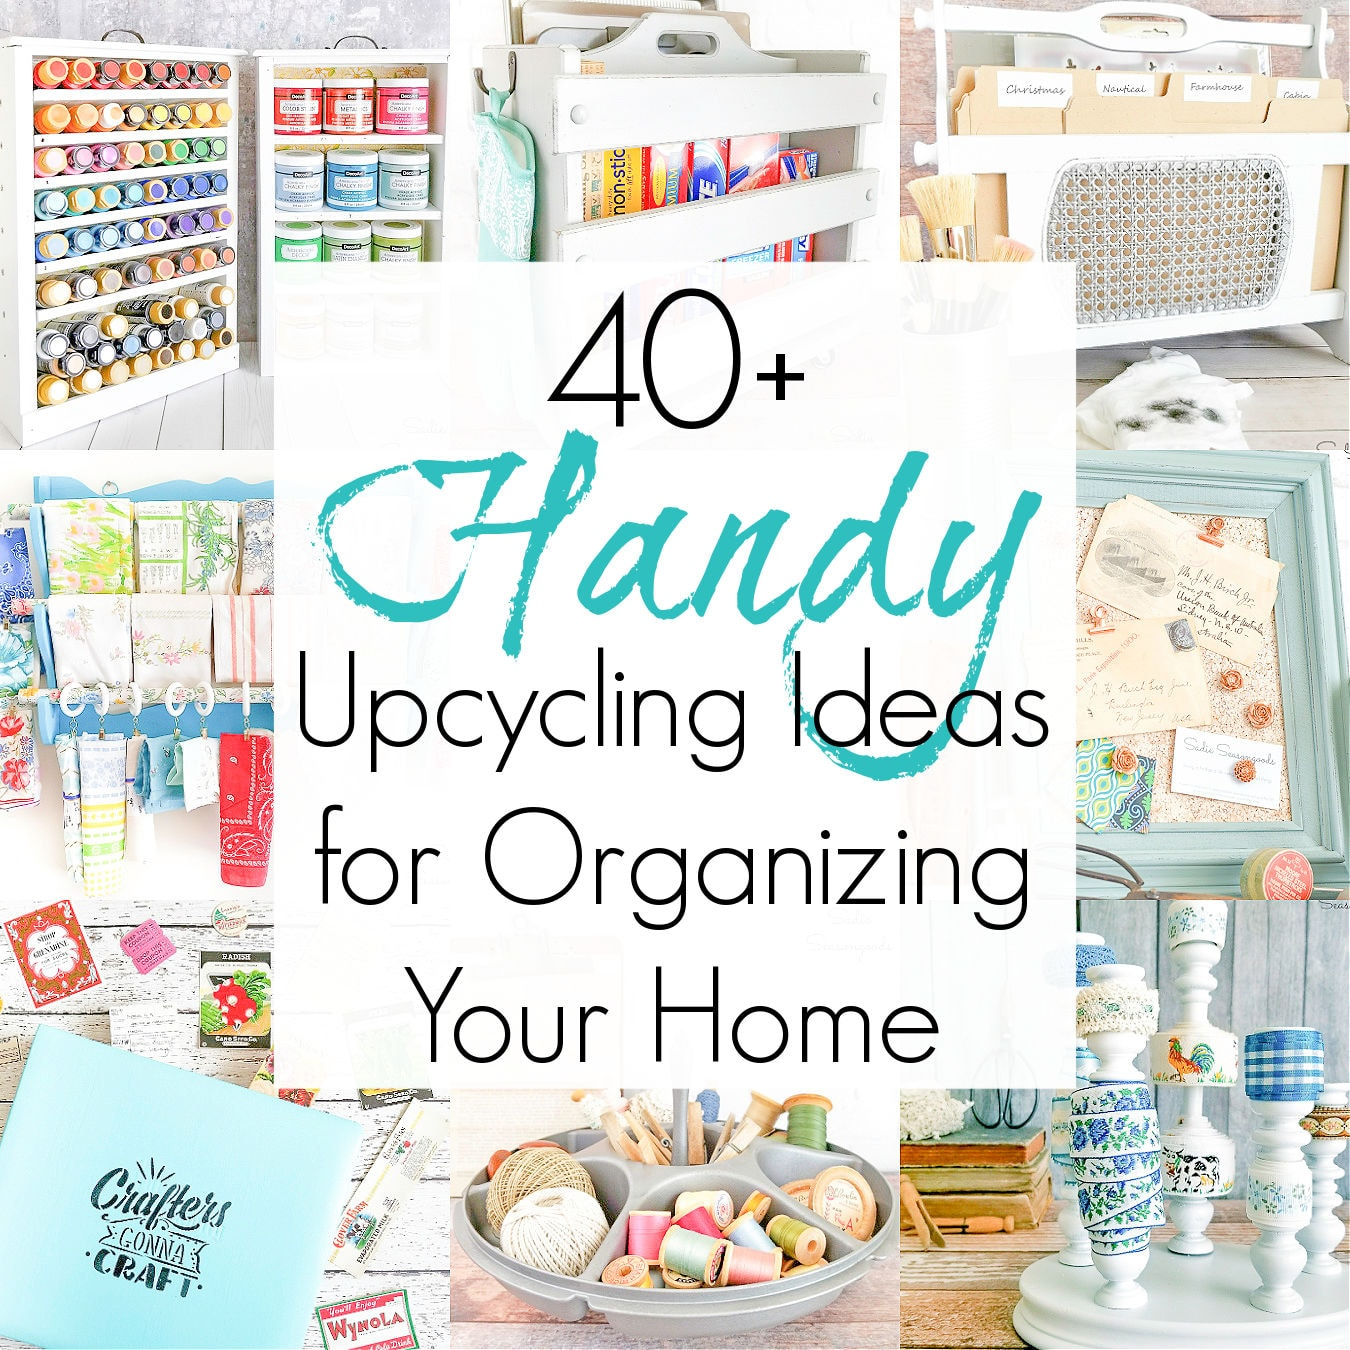 Easy Upcycling Ideas for House Storage and Organization